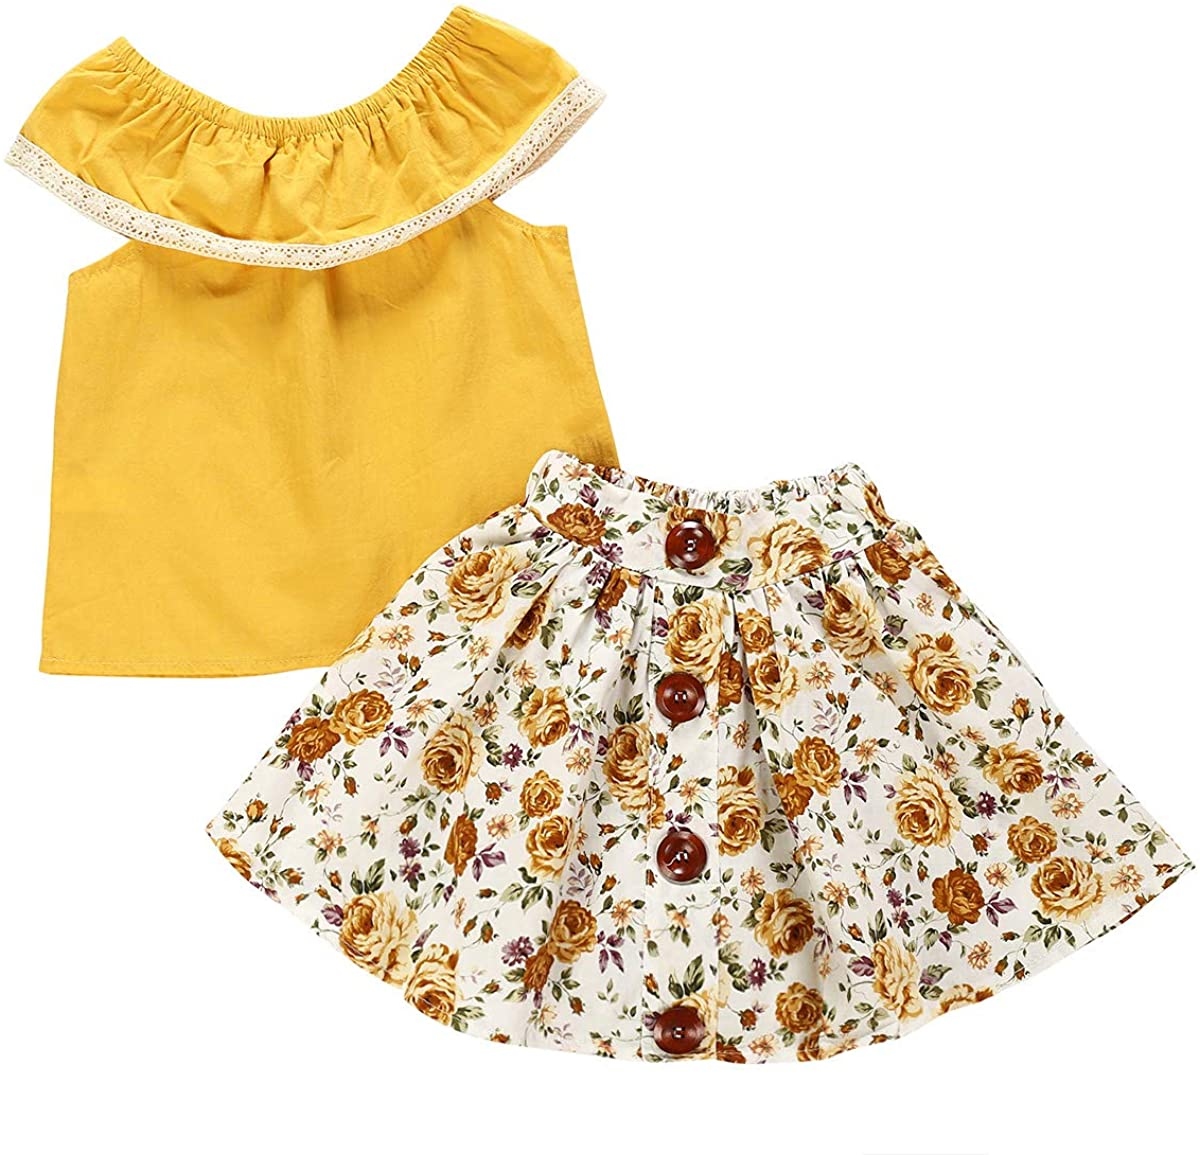 puseky 2pcs/lot Kids Baby Girl Fashion Summer Clothes Outfits Suit Shirt + Floral Skirt